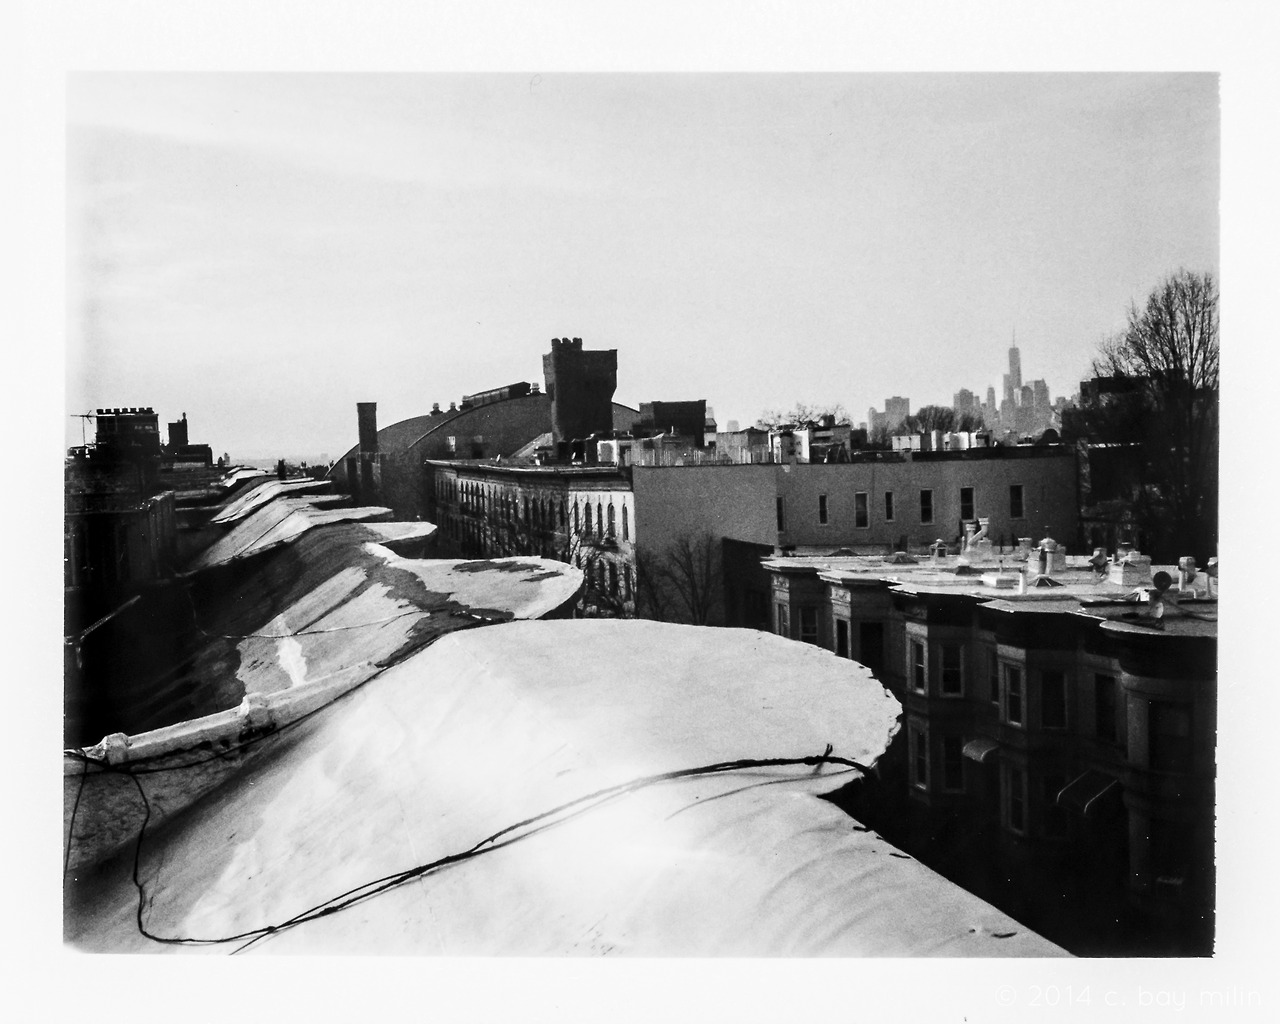 —- for a moment i thought i was in a different dimension. the rooftop looked exactly the same as my rooftop, but there were people on it. they were smiling and relaxing, drinking beers and laughing. the sun was lowering in the sky and everything around me wavered with an electric vibrancy. it was beautiful. everything was a still moment in real time, and i could see behind the green curtain of the fabric of reality. there was absolutely no way that this rooftop was my rooftop, because for sure i was visiting a friend of mine's apartment, and 100% i was at her building. but for that short lovely passage of time, early evening with the sunset glowing warm and everything so till and so harmonic…it was a form of a waking dream that extended into my bones. sometimes you realize that the world still has some magic to share, some awe to instill, and some beauty to bestow. and it is in these discoveries where we are refreshed and made anew. —-